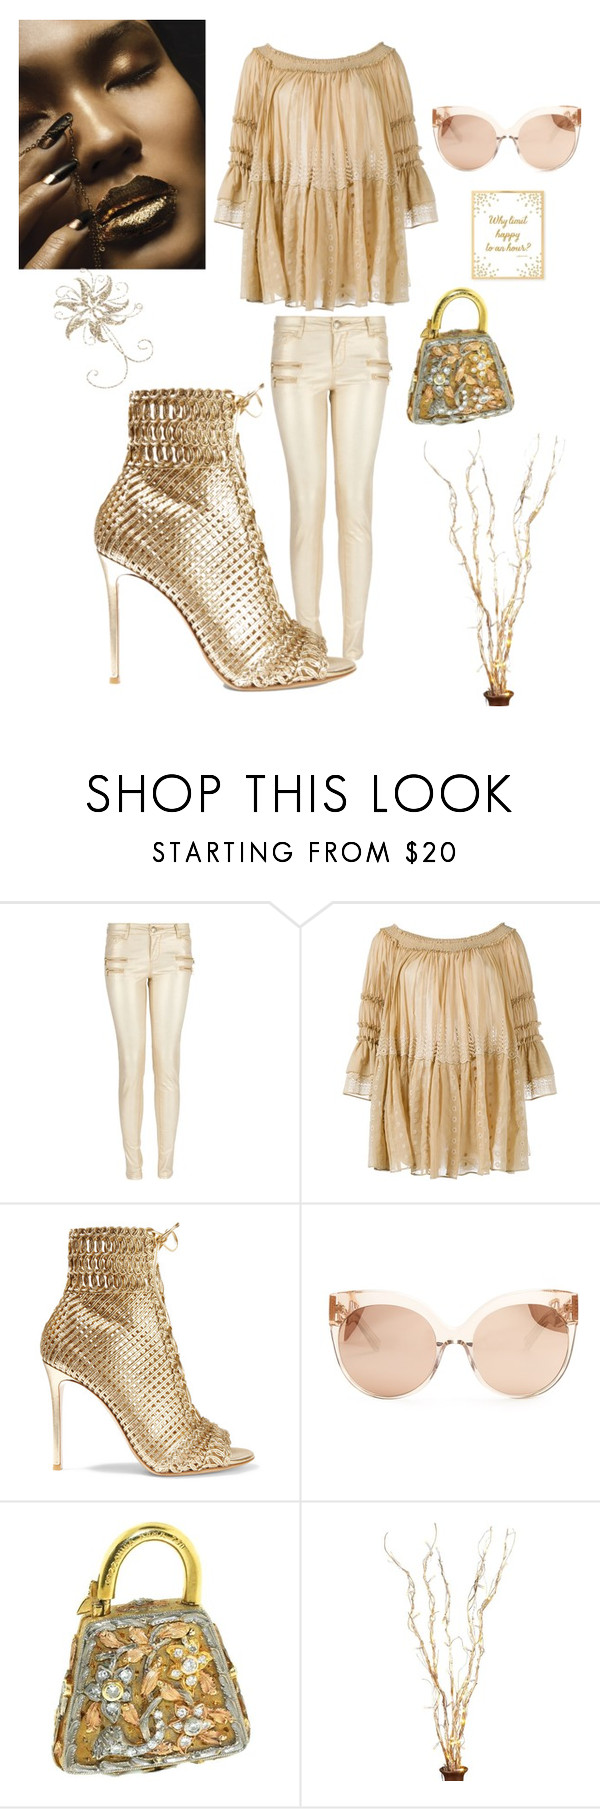 """""""All things GOLD"""" by kotnourka ❤ liked on Polyvore featuring Morgan, Chloé, Gianvito Rossi and Linda Farrow"""